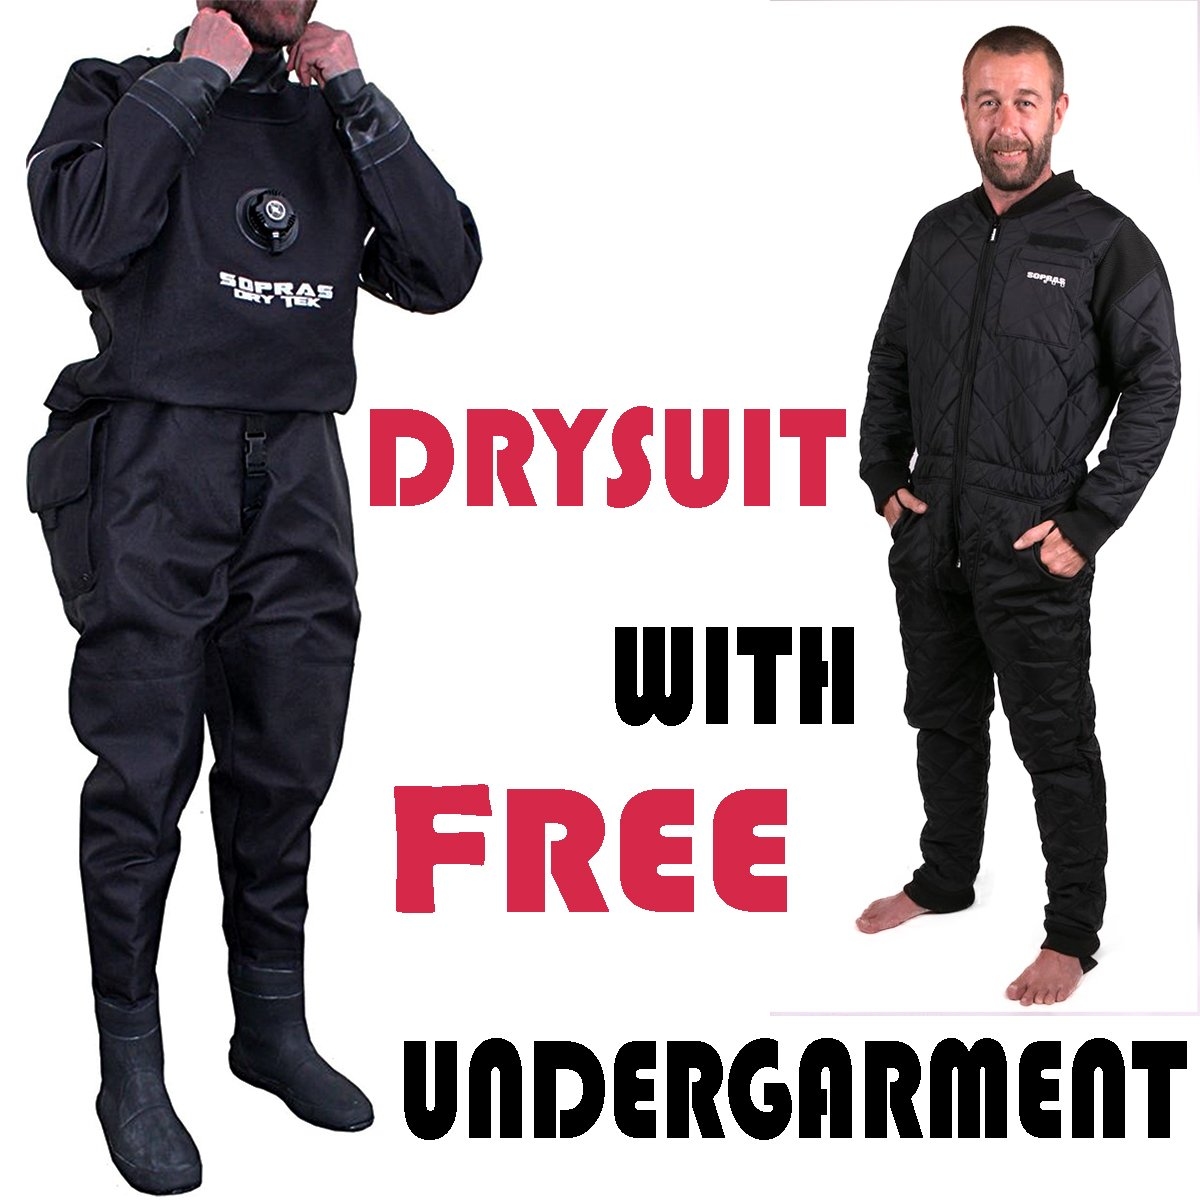 Sopras Sub Trilaminate DryTek with back zipper Size X-Large with Boots Size 10 Technical Dry Suit NOW WITH FREE UNDERGAMENT